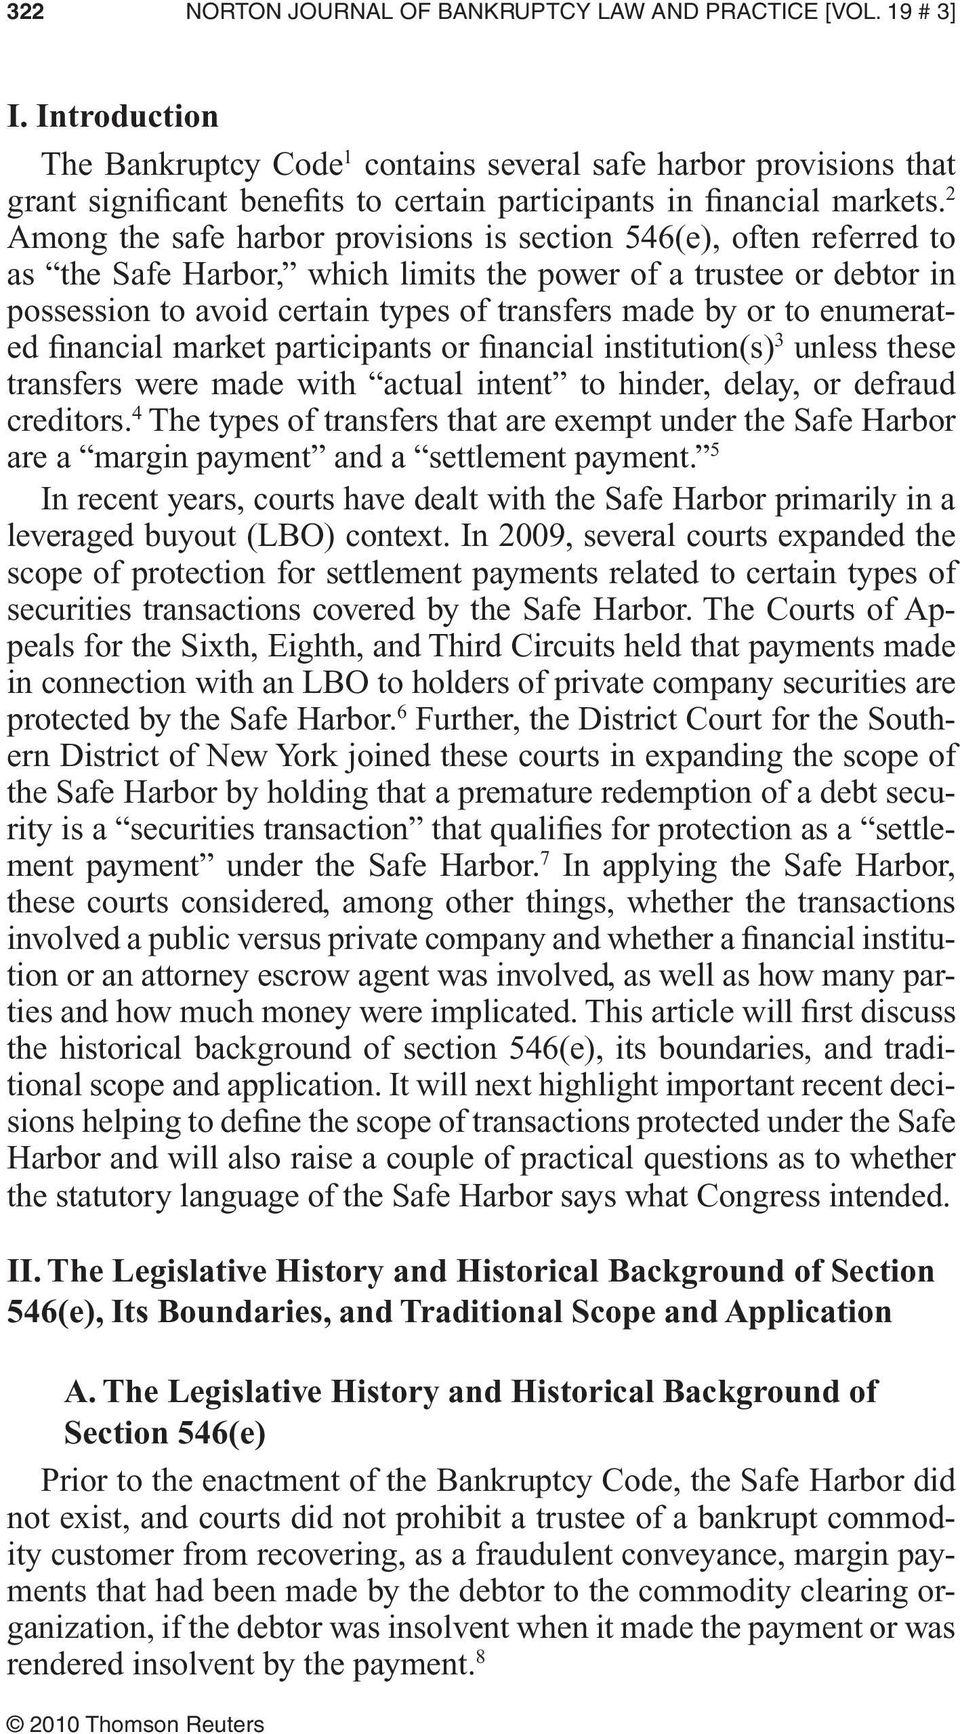 2 Among the safe harbor provisions is section 546(e), often referred to as the Safe Harbor, which limits the power of a trustee or debtor in possession to avoid certain types of transfers made by or